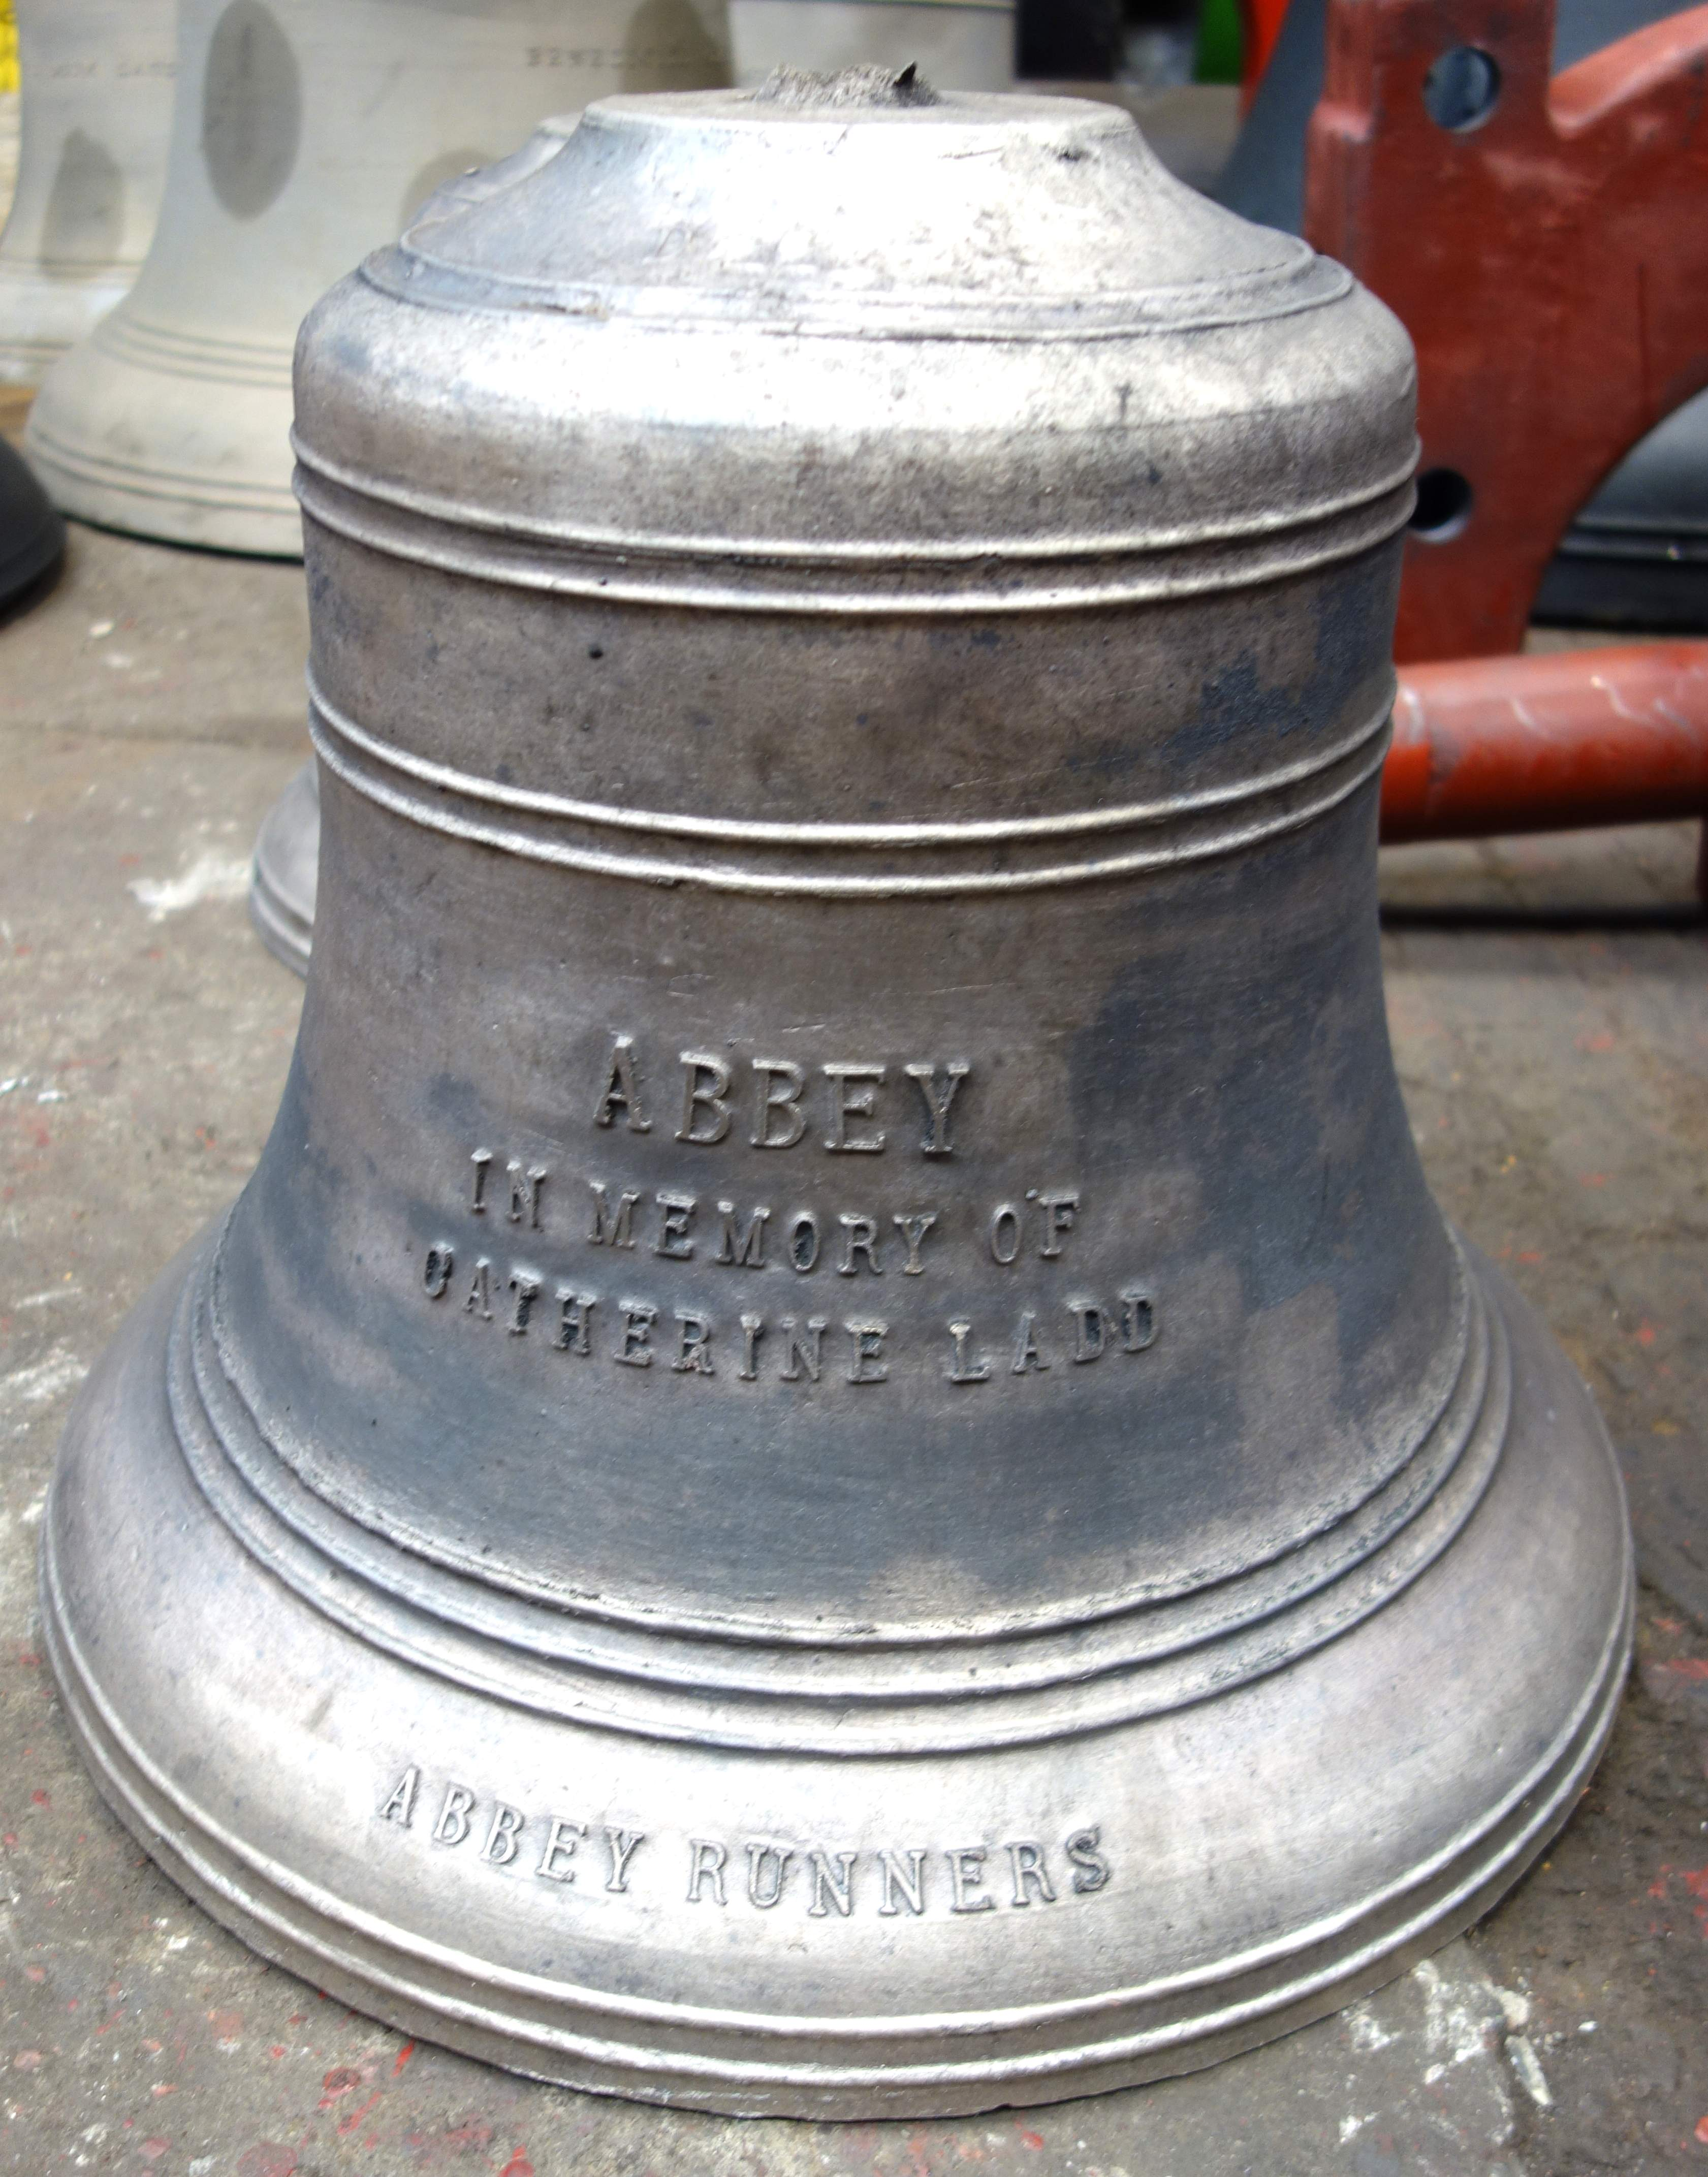 One of the bells remembering Catherine Ladd, Jeff's wife, whose passing inspired the scheme.